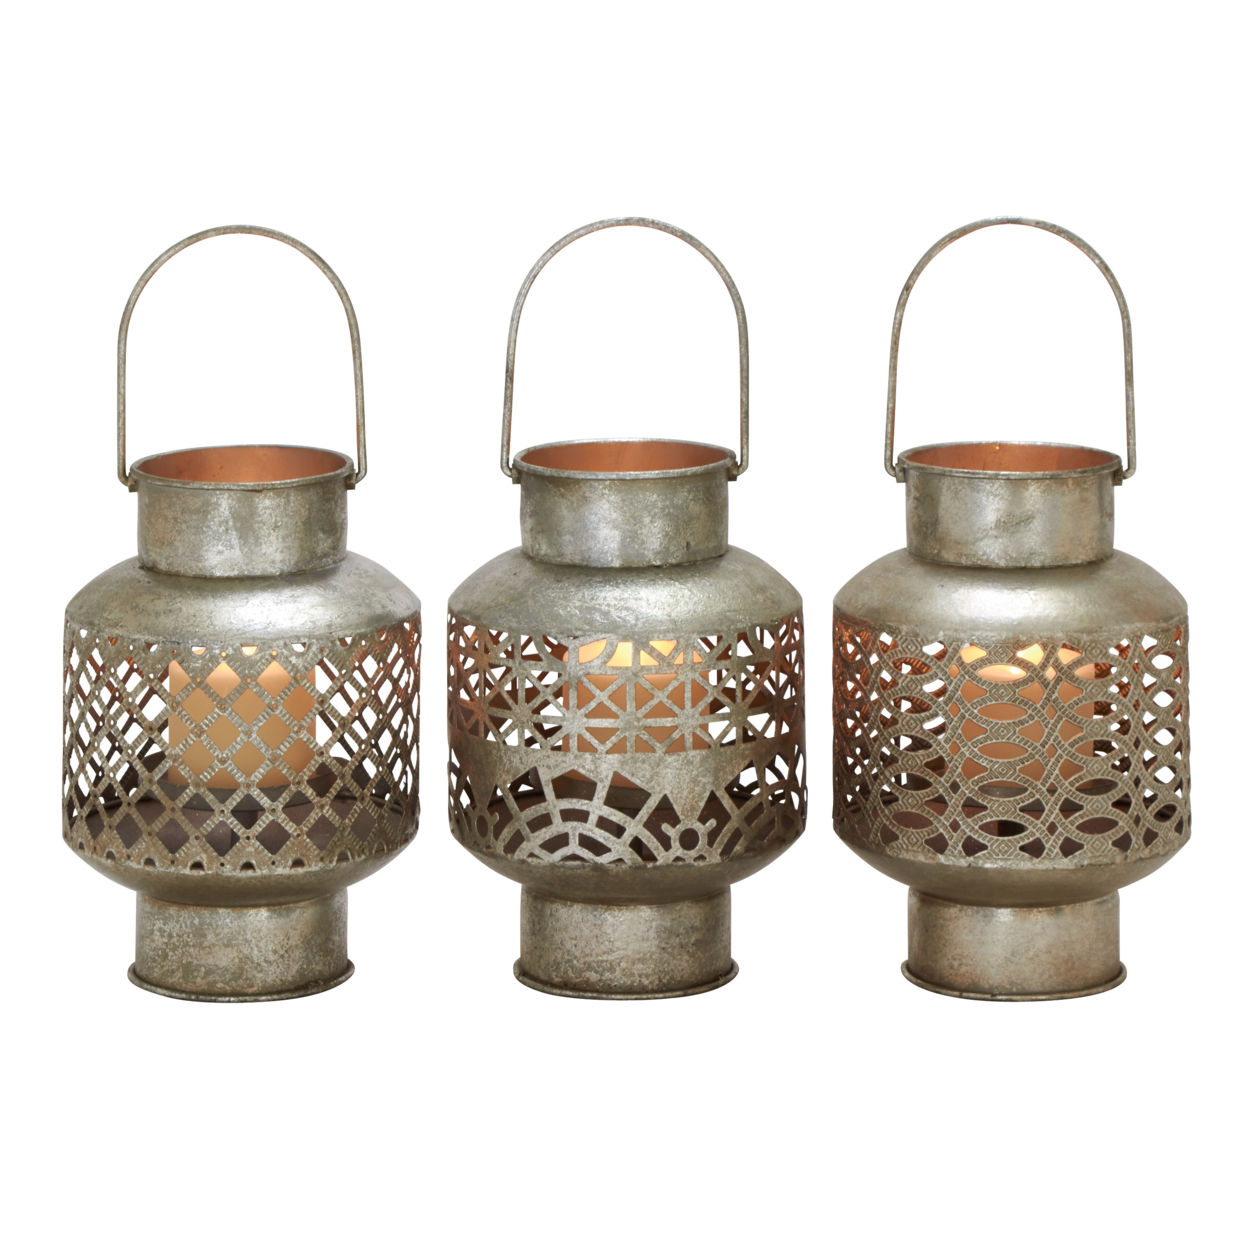 Unique Styled Metal Glass Lantern 3 Assorted 59c24579e224615b7a12419d